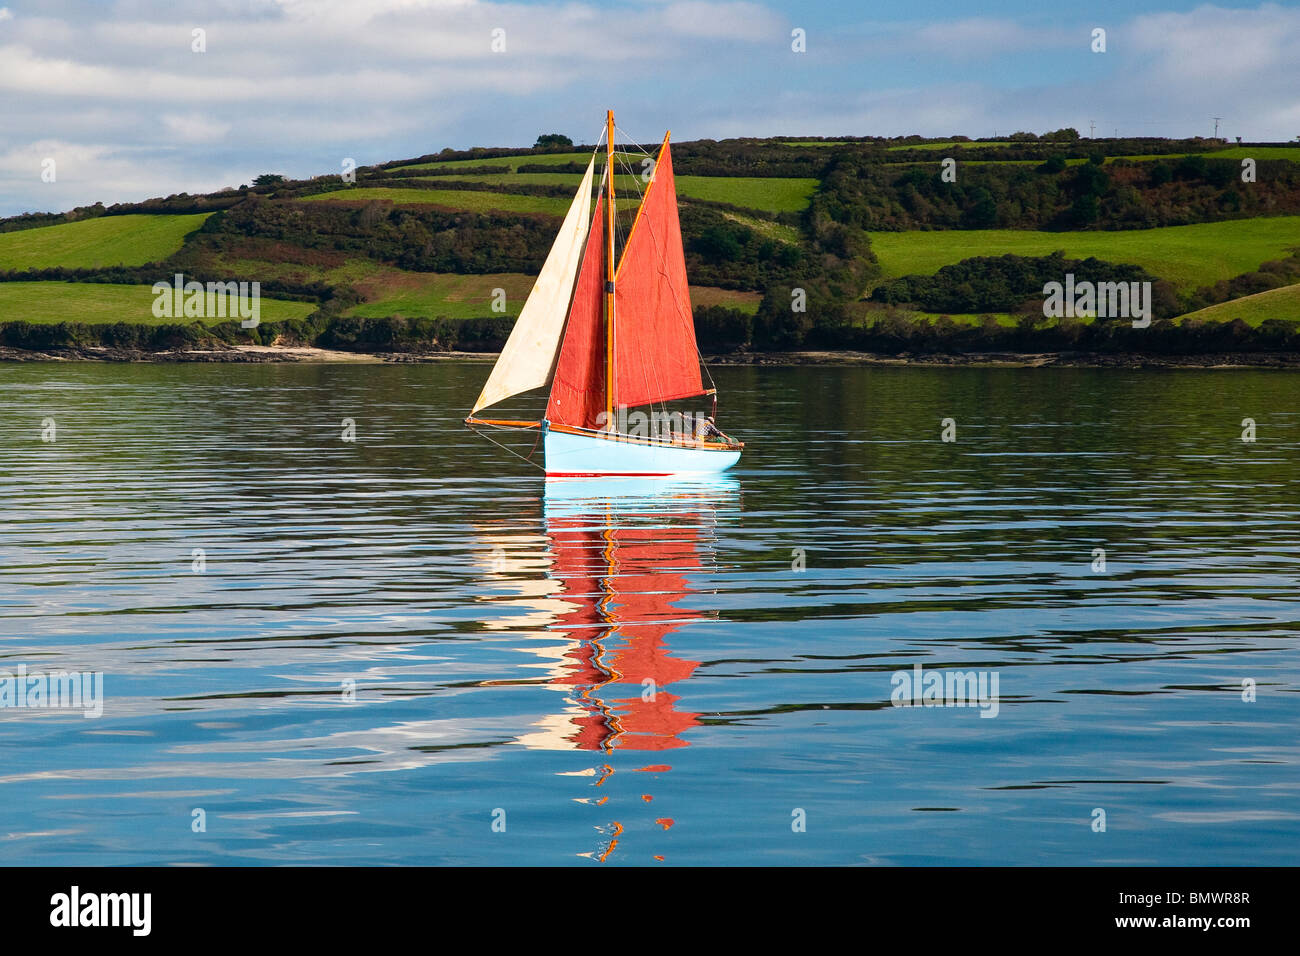 Oyster Fisherman Dredging for Oysters in the River Fal ,South West, Cornwall, England, UK Stock Photo